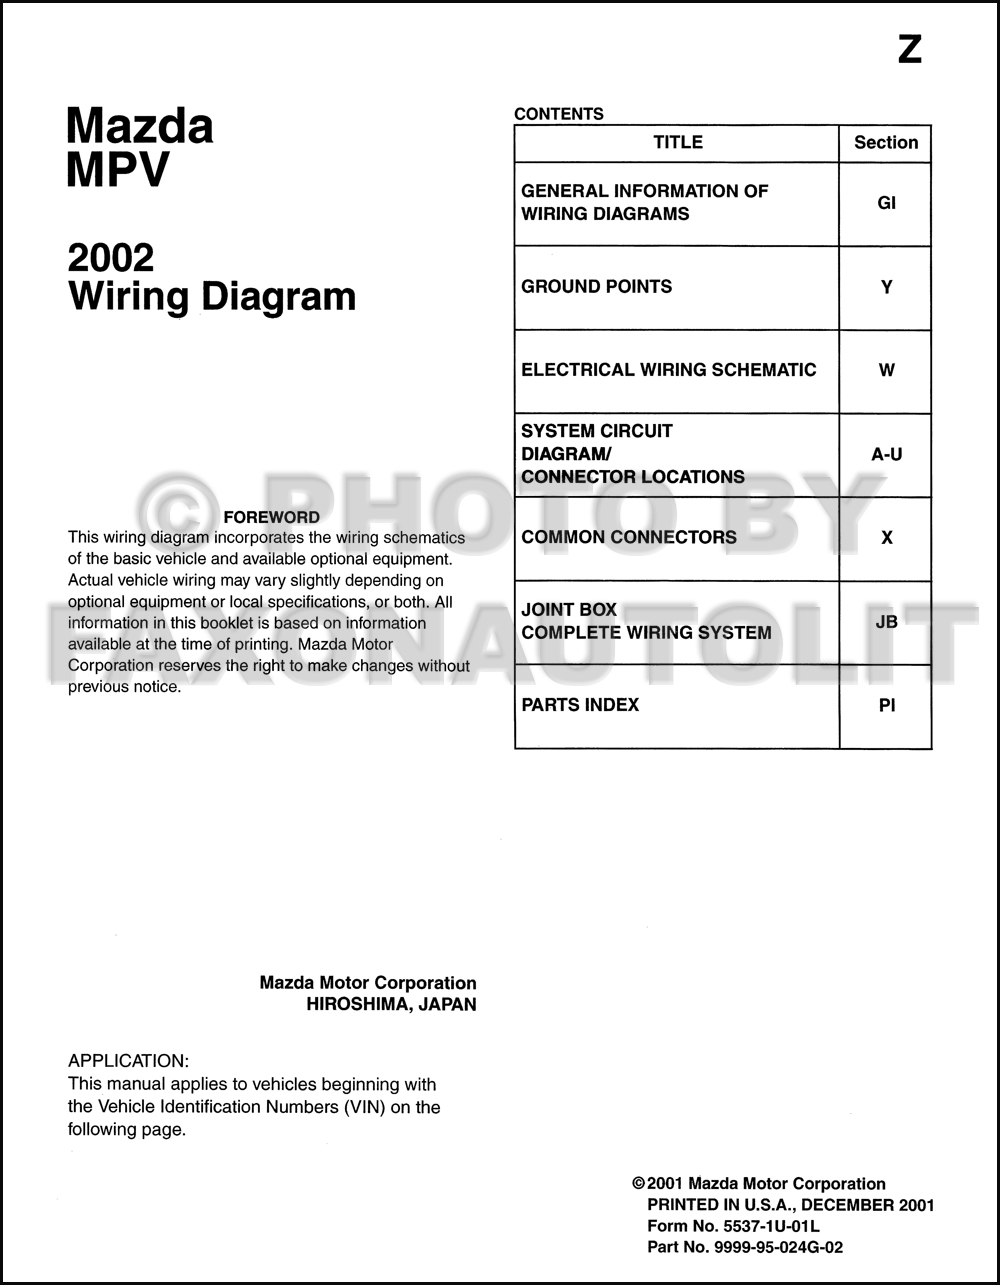 2002 Mazda Mpv Wiring Diagram Manual Guide Engine Original Rh Faxonautoliterature Com 2000